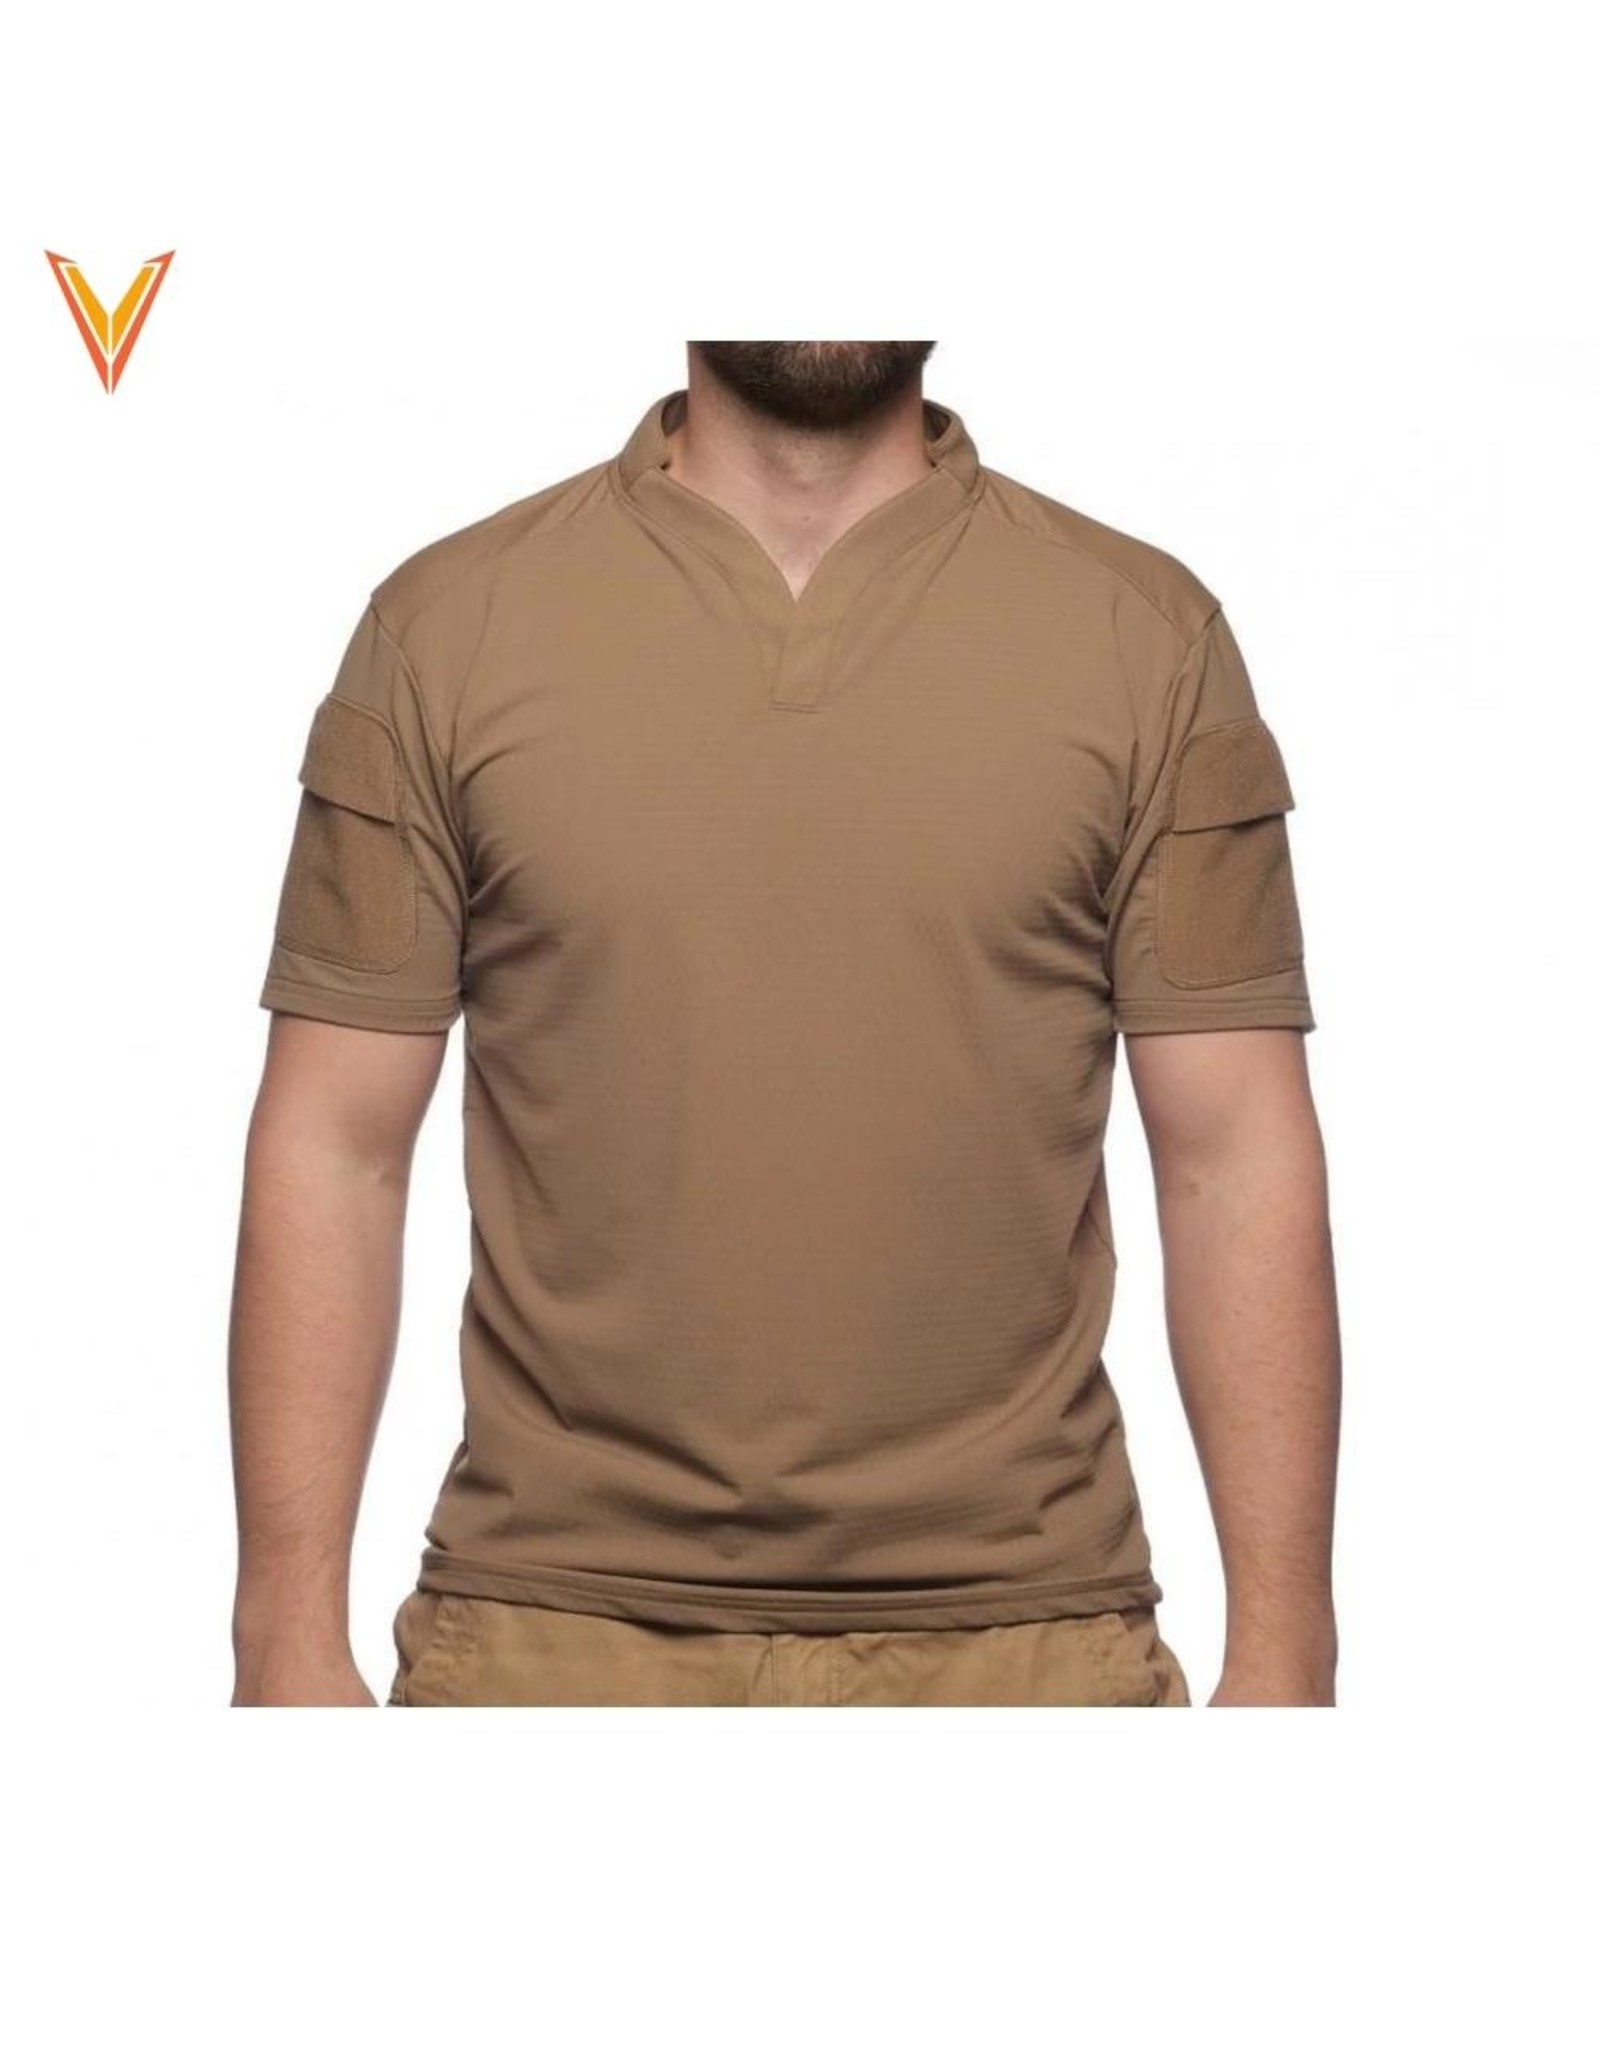 VELOCITY SYSTEMS VELOCITY SYSTEMS BOSS RUGBY SHIRT